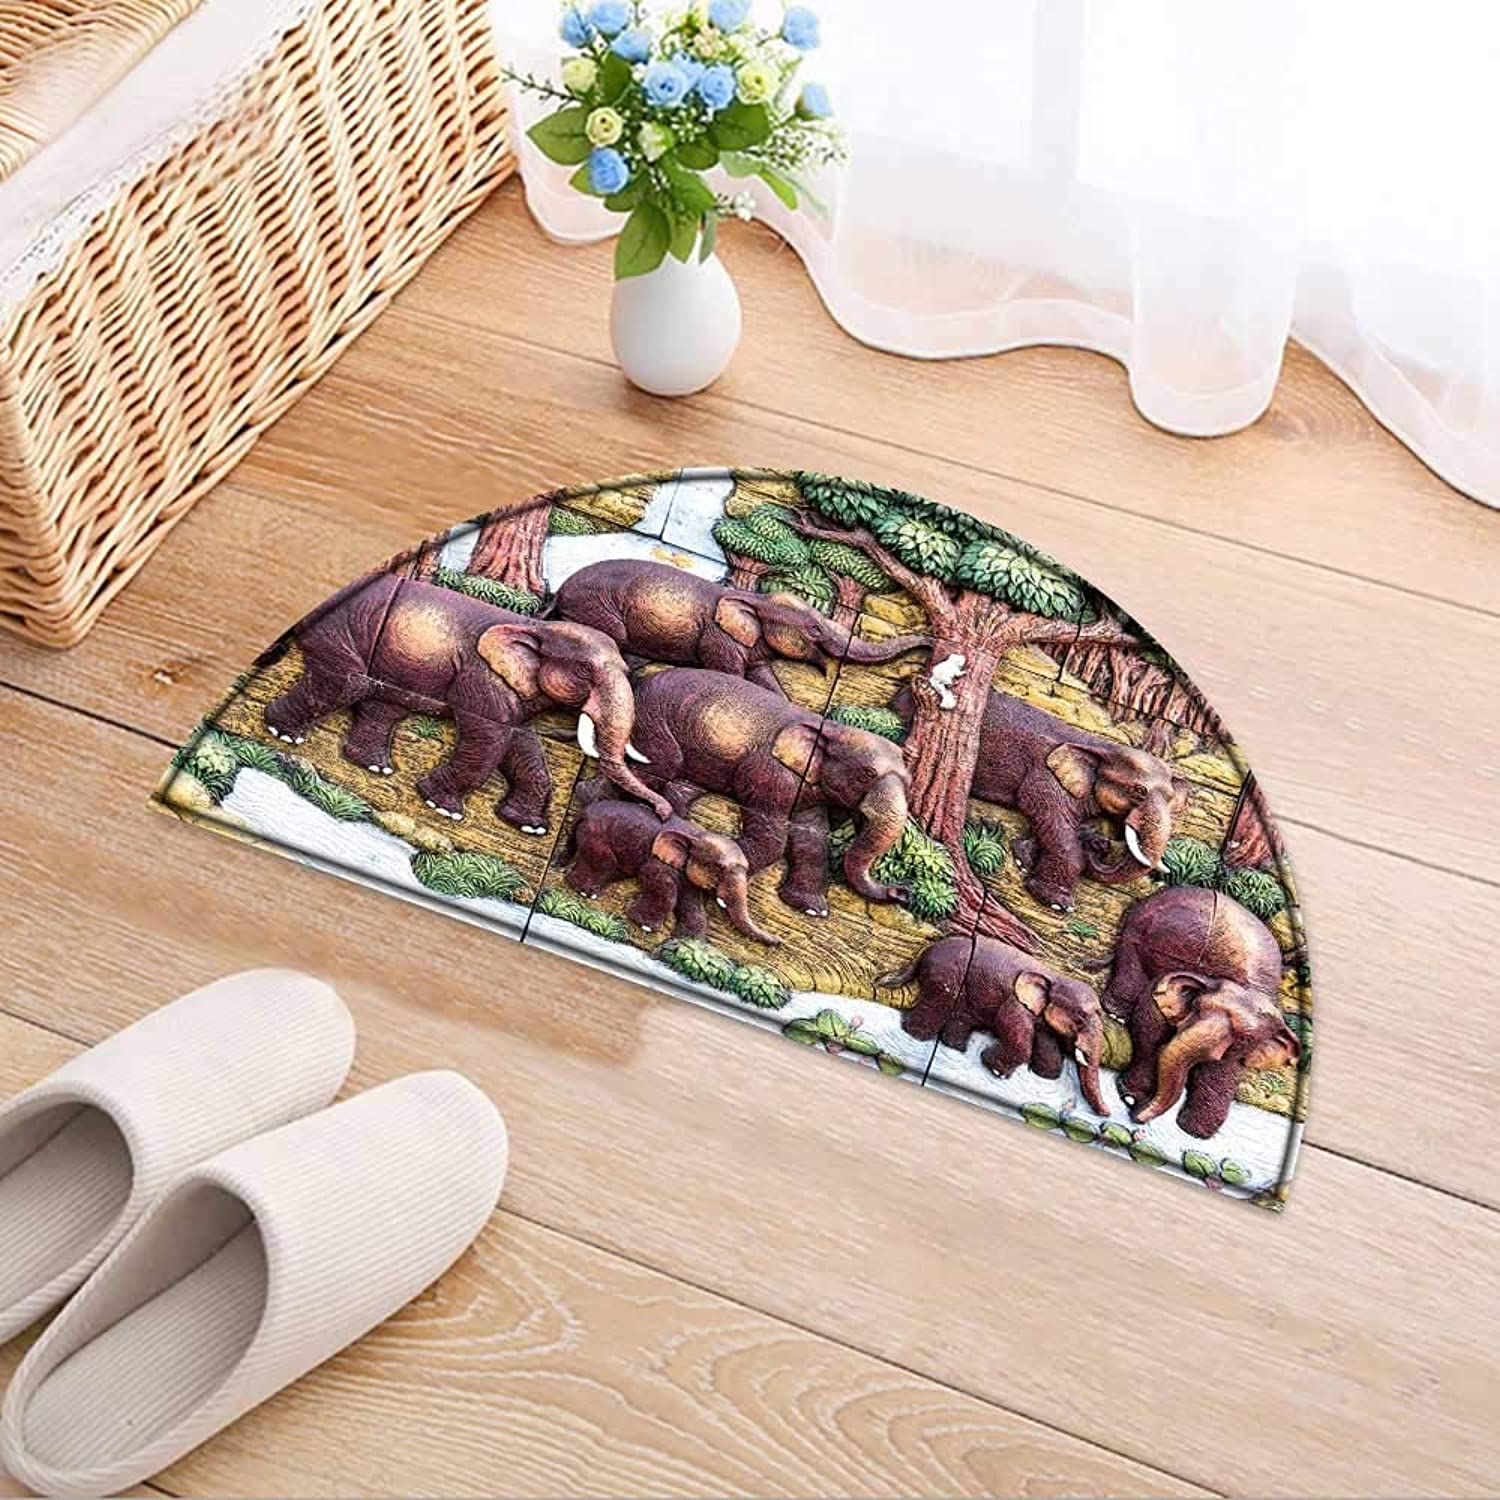 Semicircle Rug Kid Carpet Surin Thailand May Elephant Sculpture bas reliefs wso That Tourists can Home Decor Foor Carpe W47 x H32 INCH